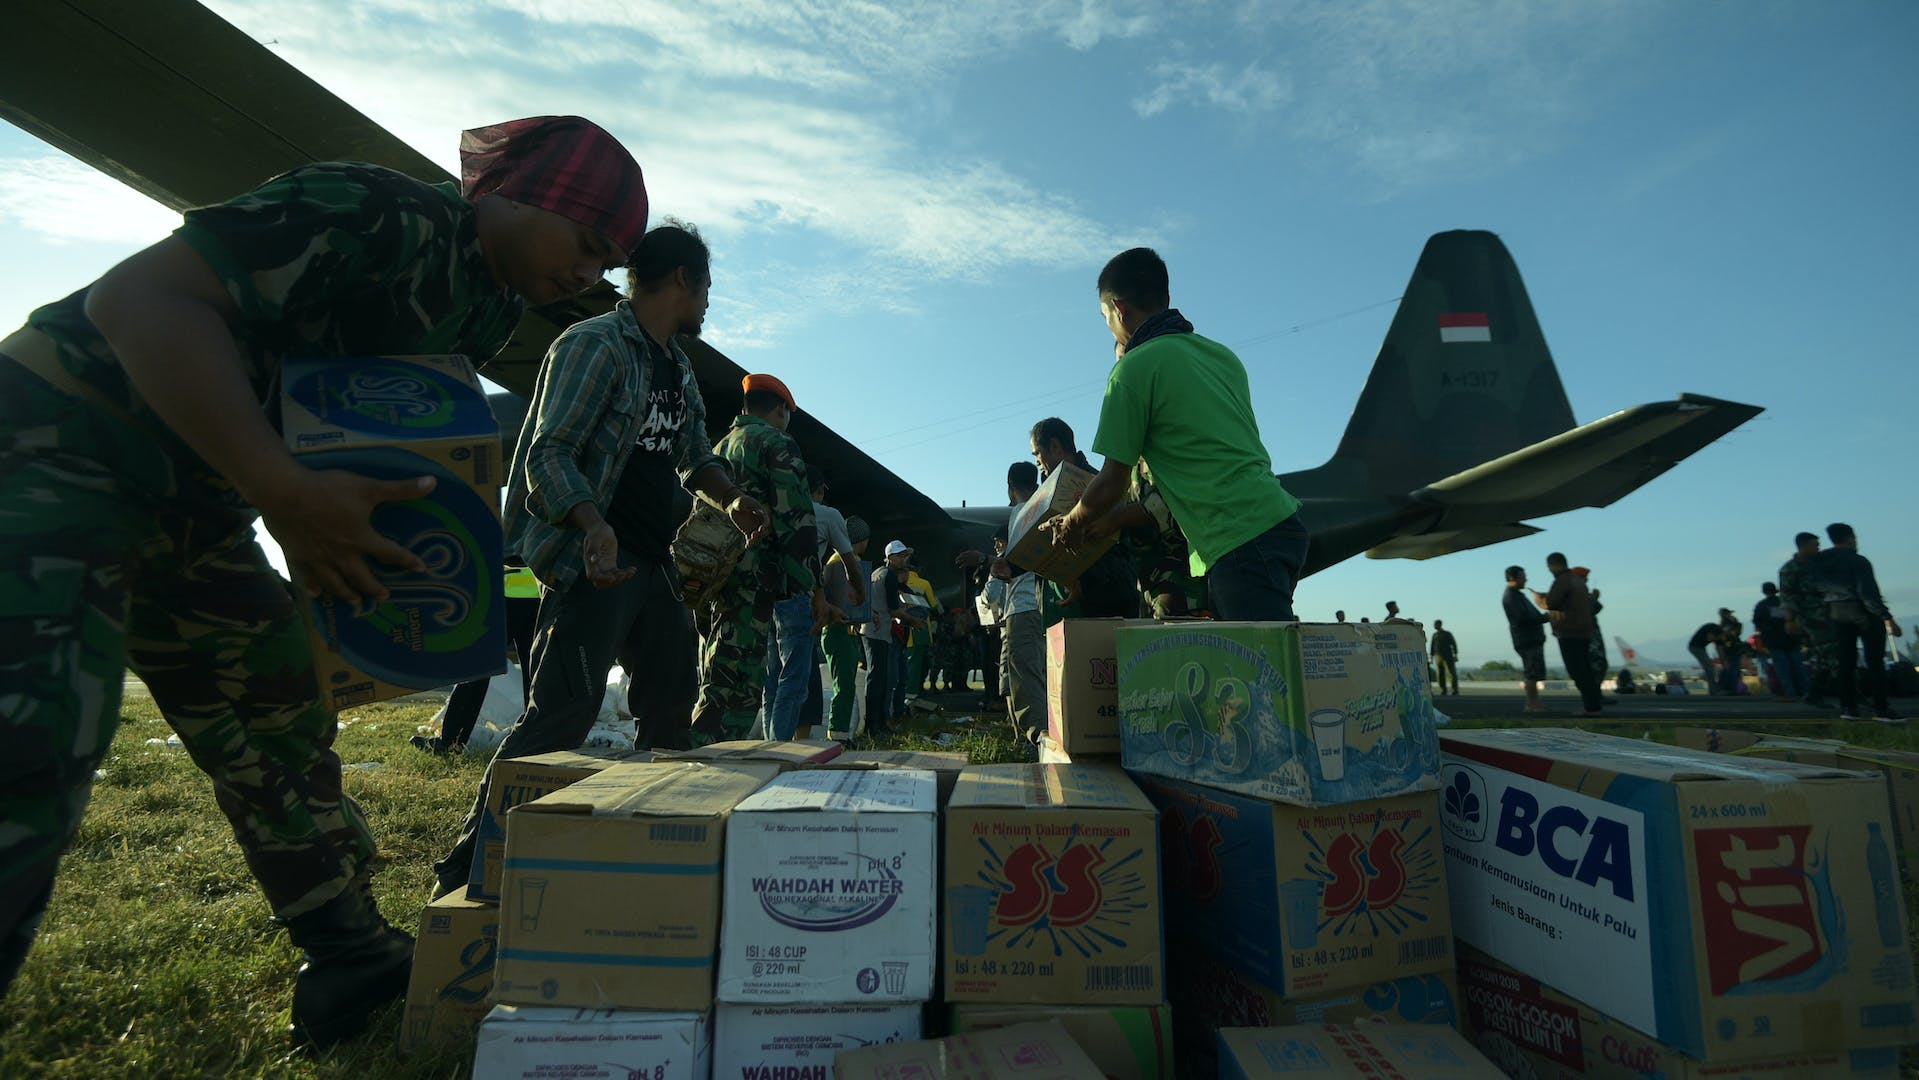 Chartered flights can drop humanitarian supplies into disaster zones.